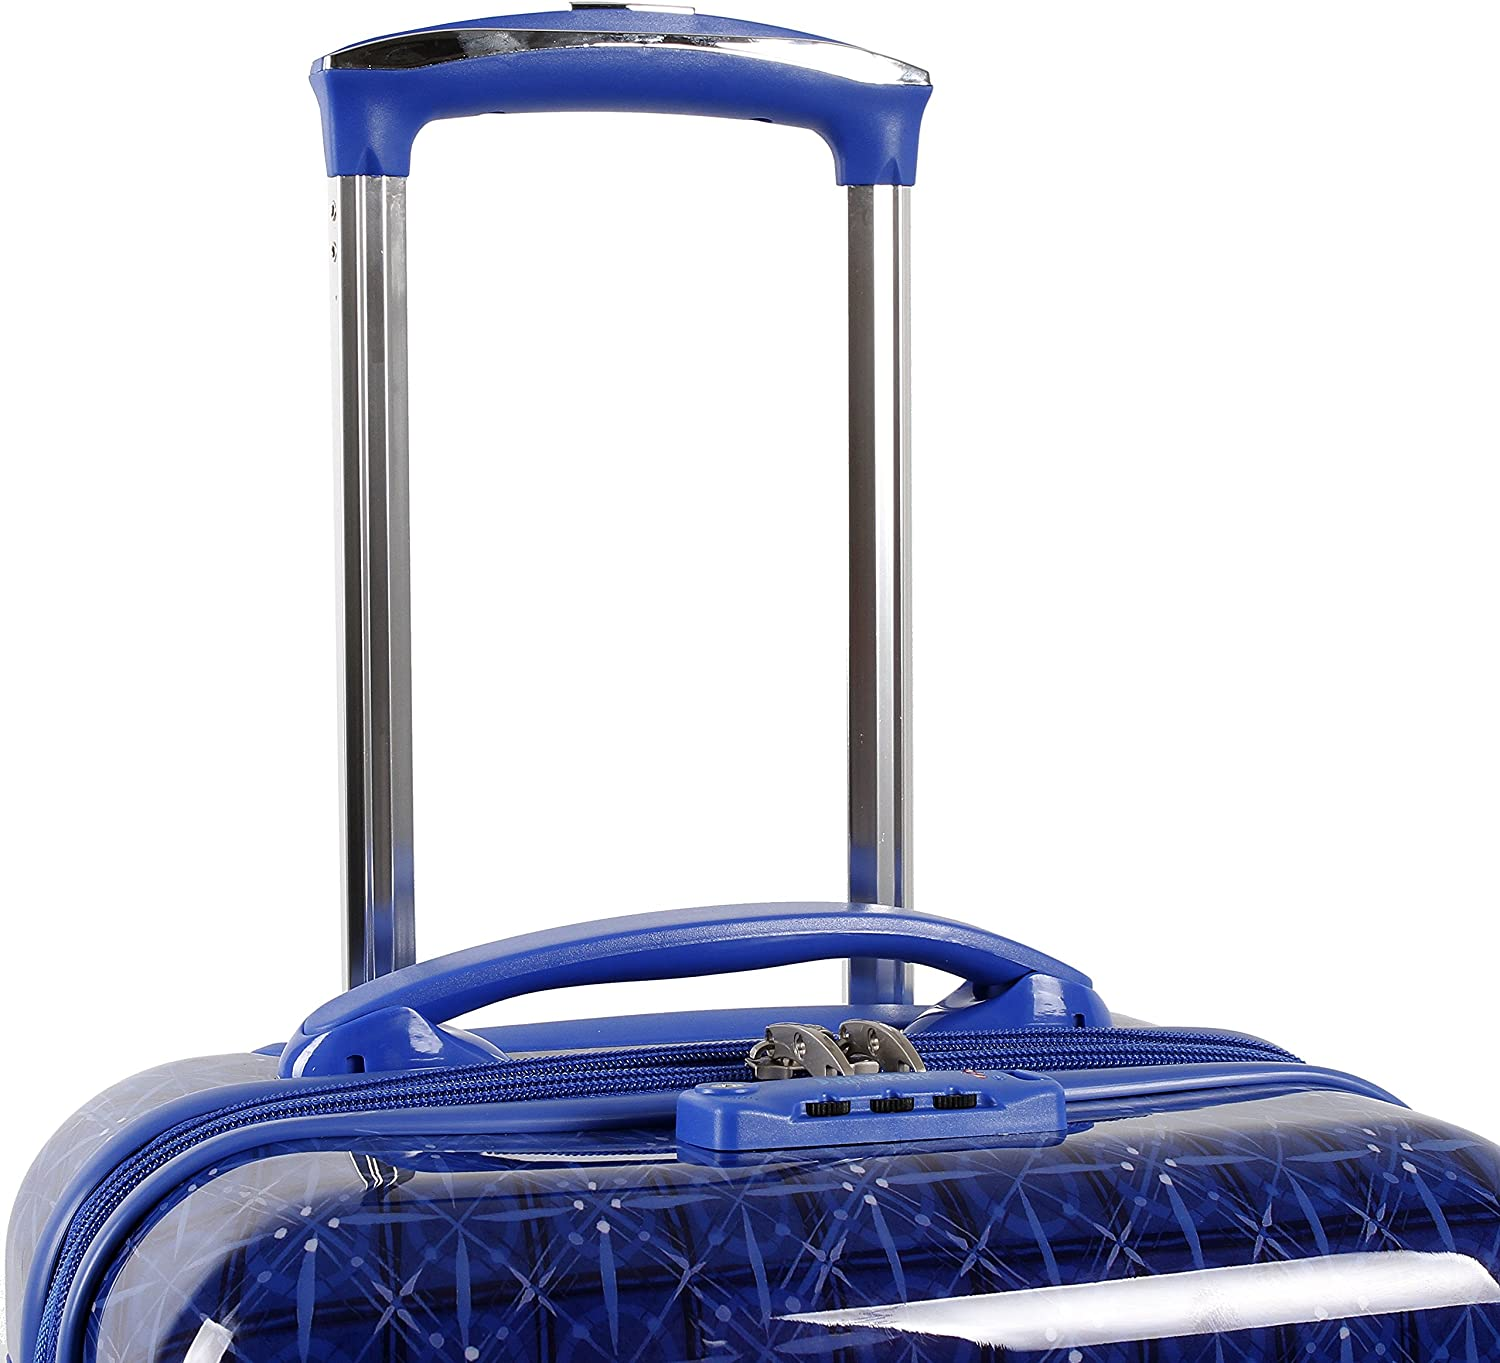 J World New York Taqoo Polycarbonate Carry-On Spinnger Luggage